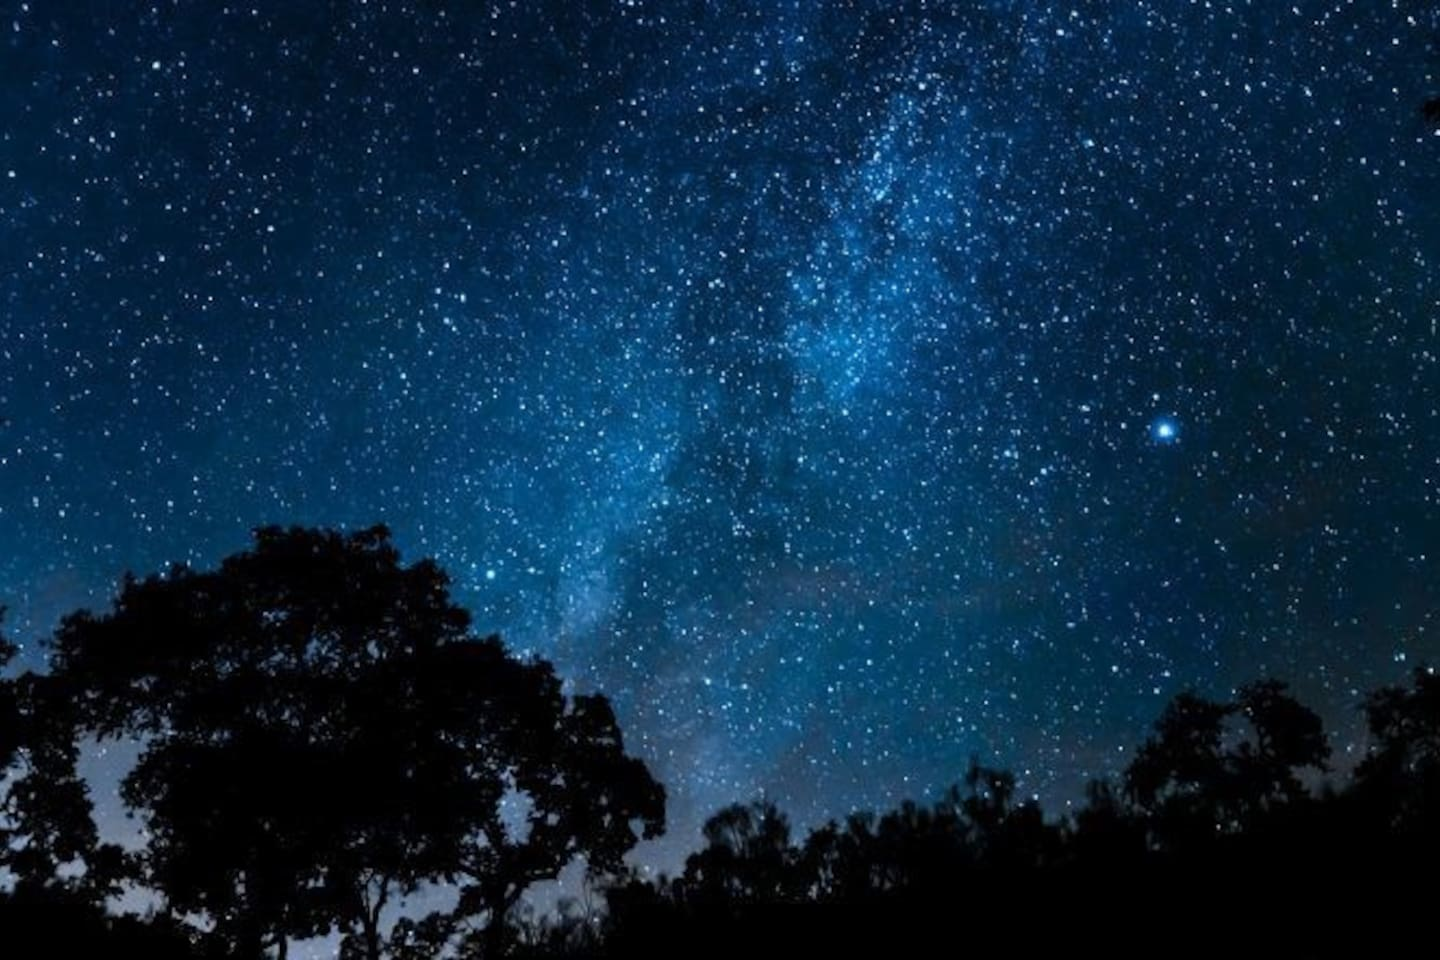 The starry skies above the finca